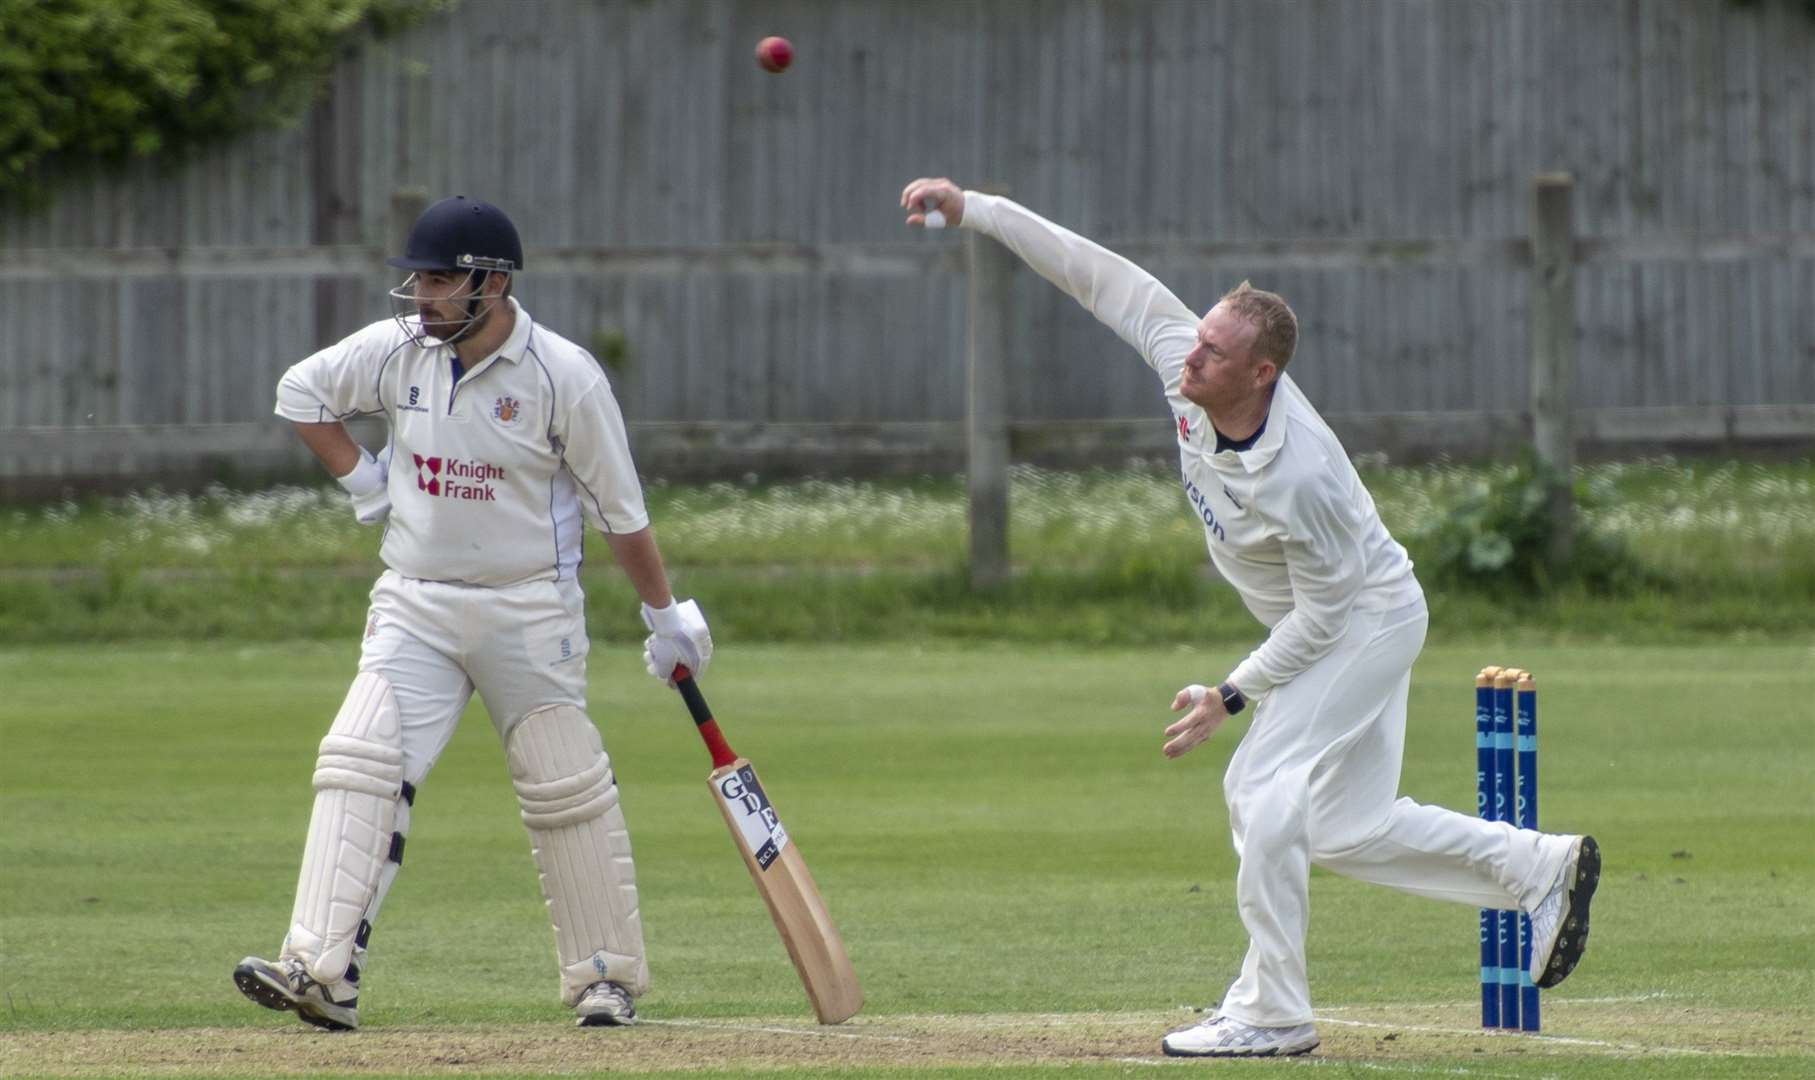 Jason Coleman was in the wickets for Foxton at the weekend. Picture: Keith Heppell